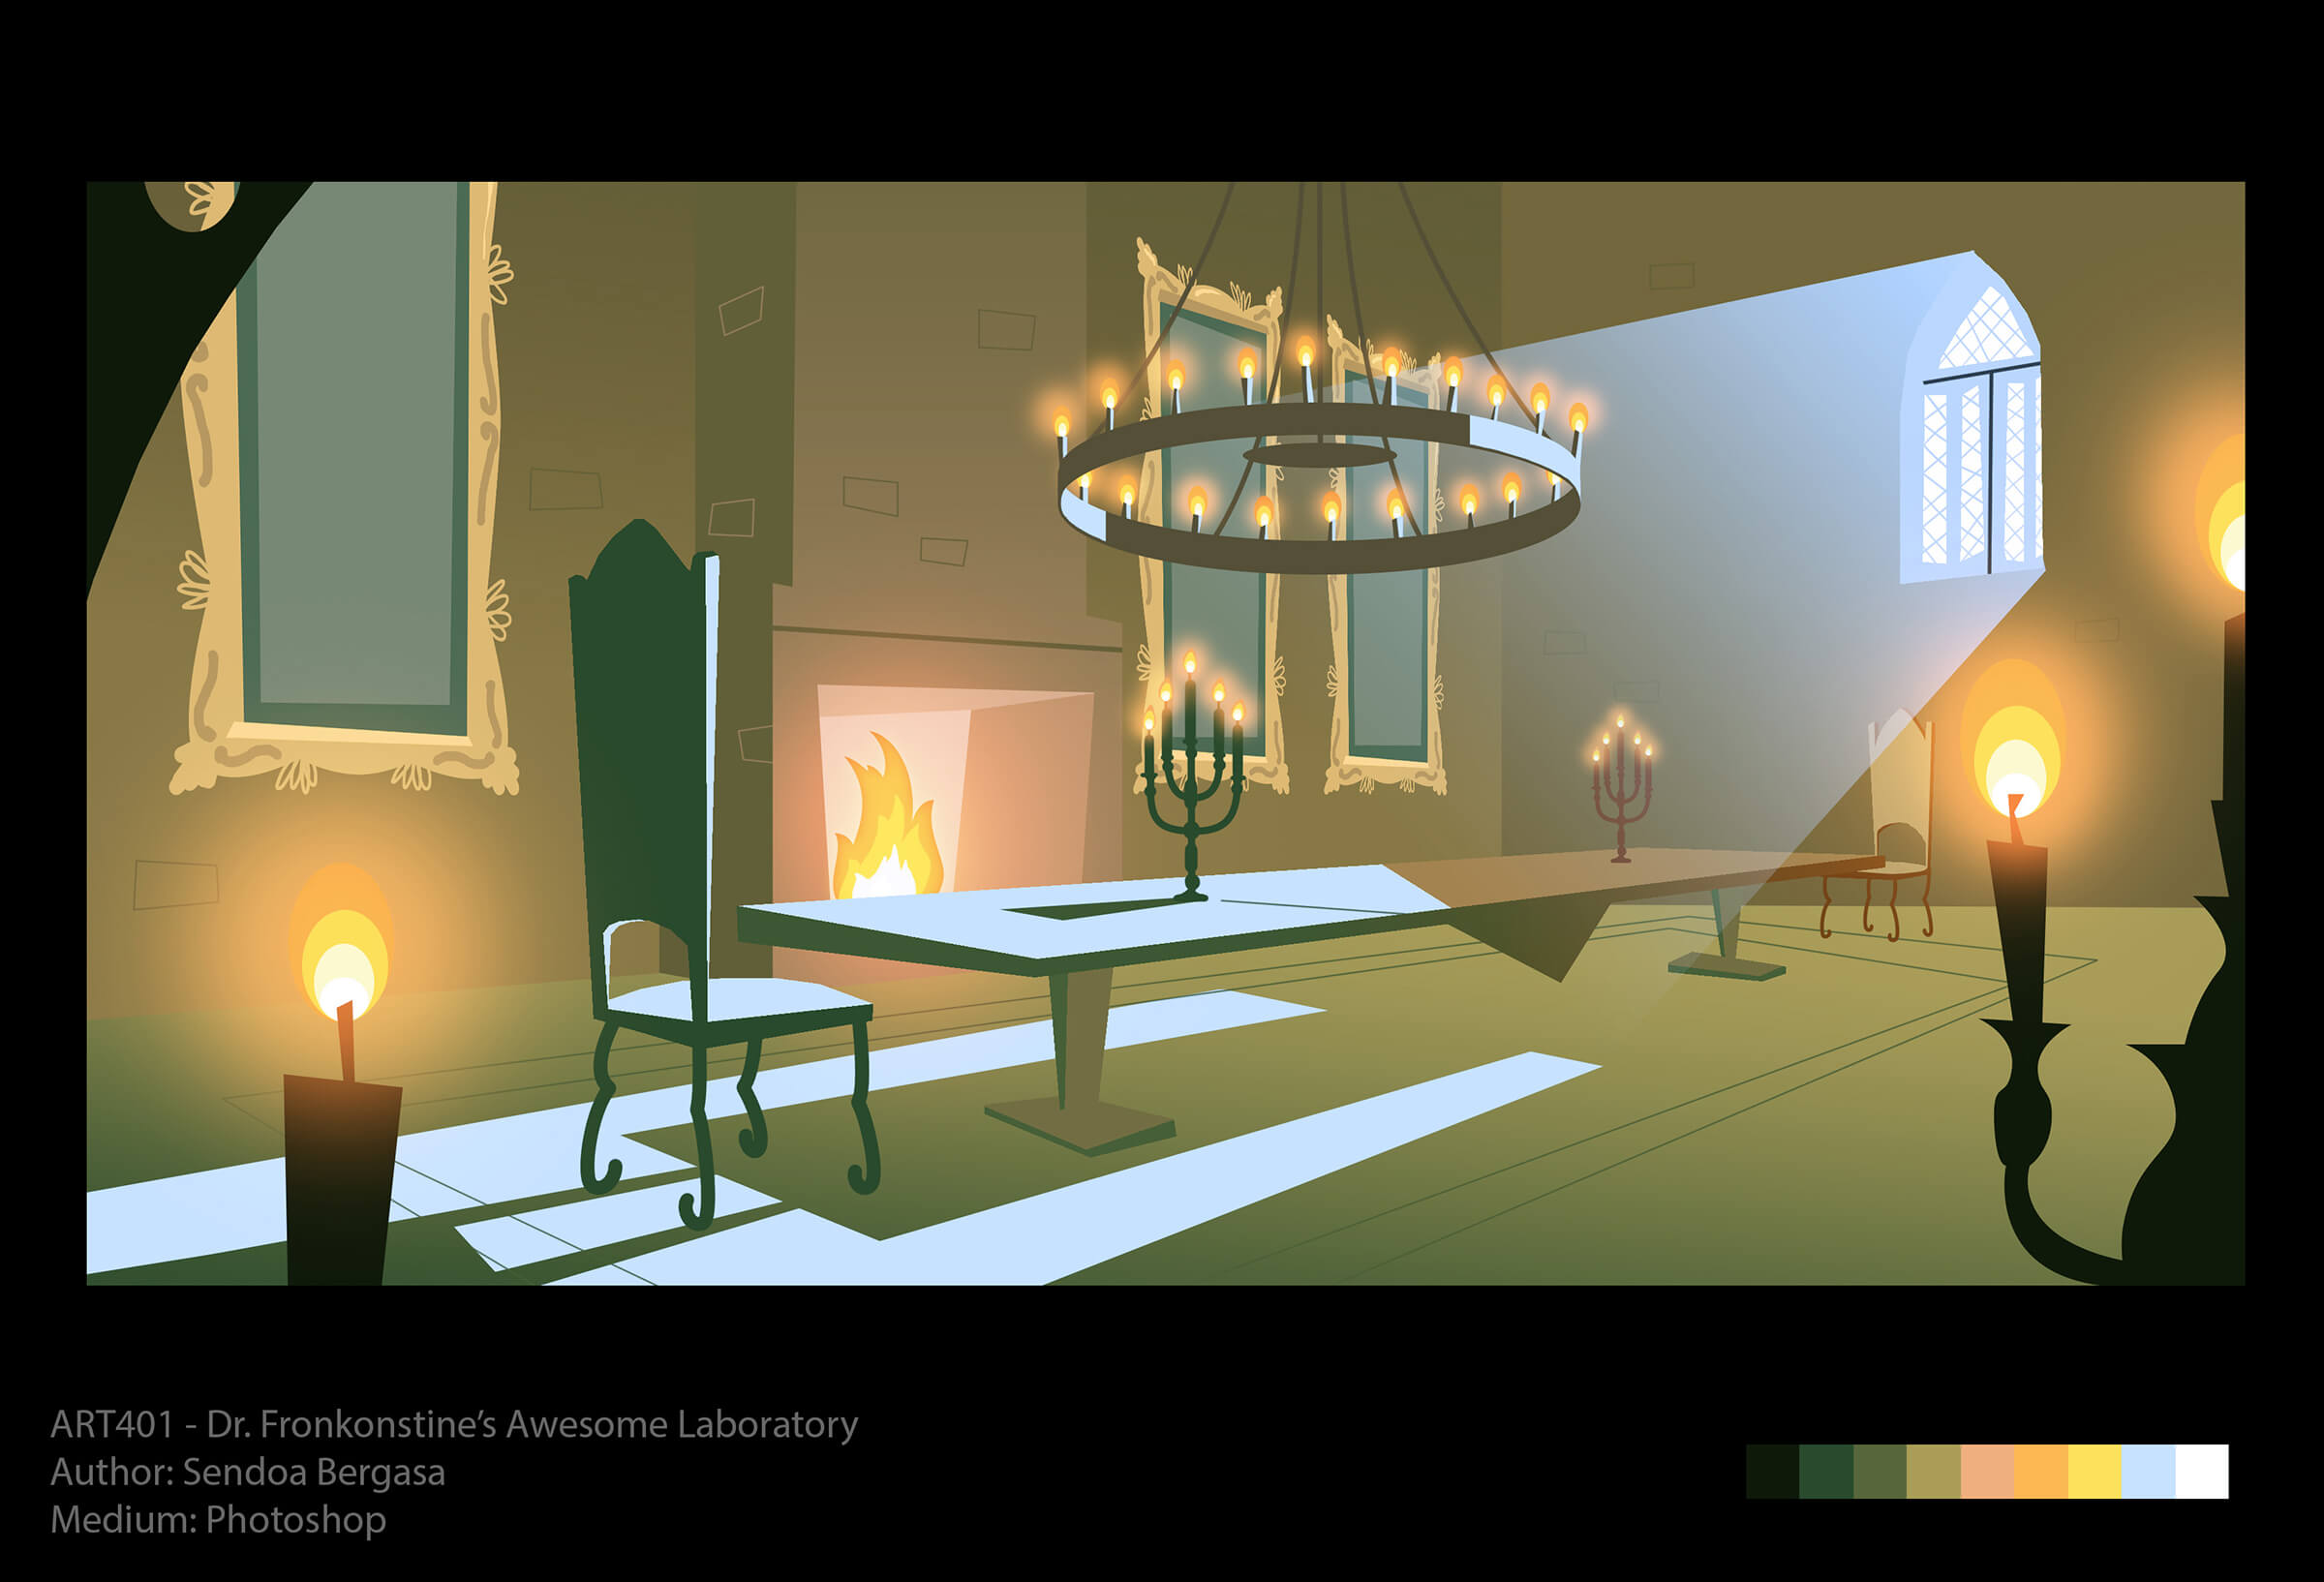 Concept art of a long dining table with high-backed chairs next to a fireplace. A candlelit chandelier glows overhead.